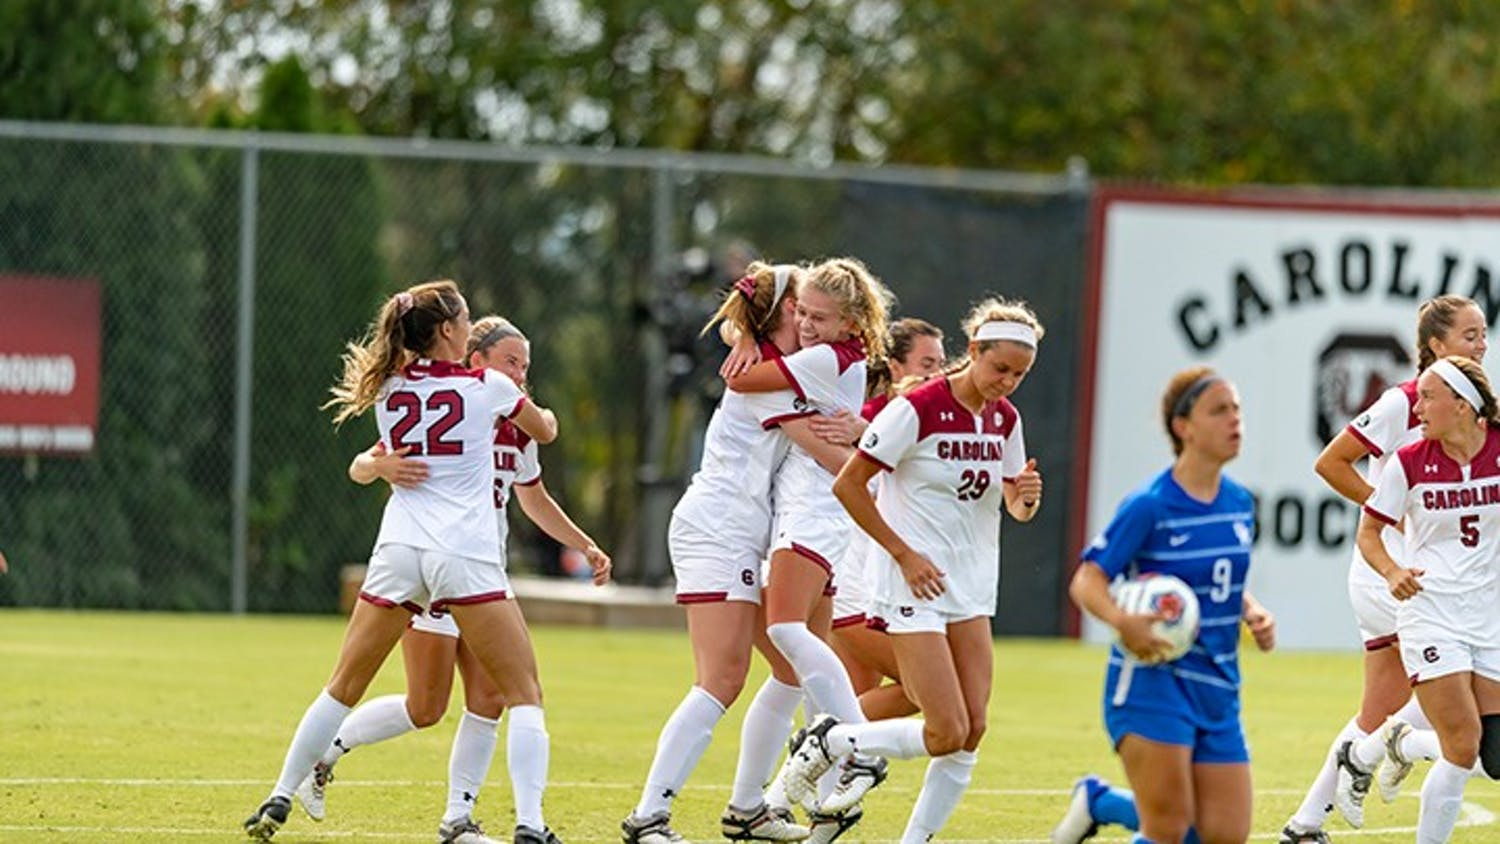 Members of the woman's soccer team celebrate after a goal against Kentucky. The Gamecocks beat the Wildcats 1-0.